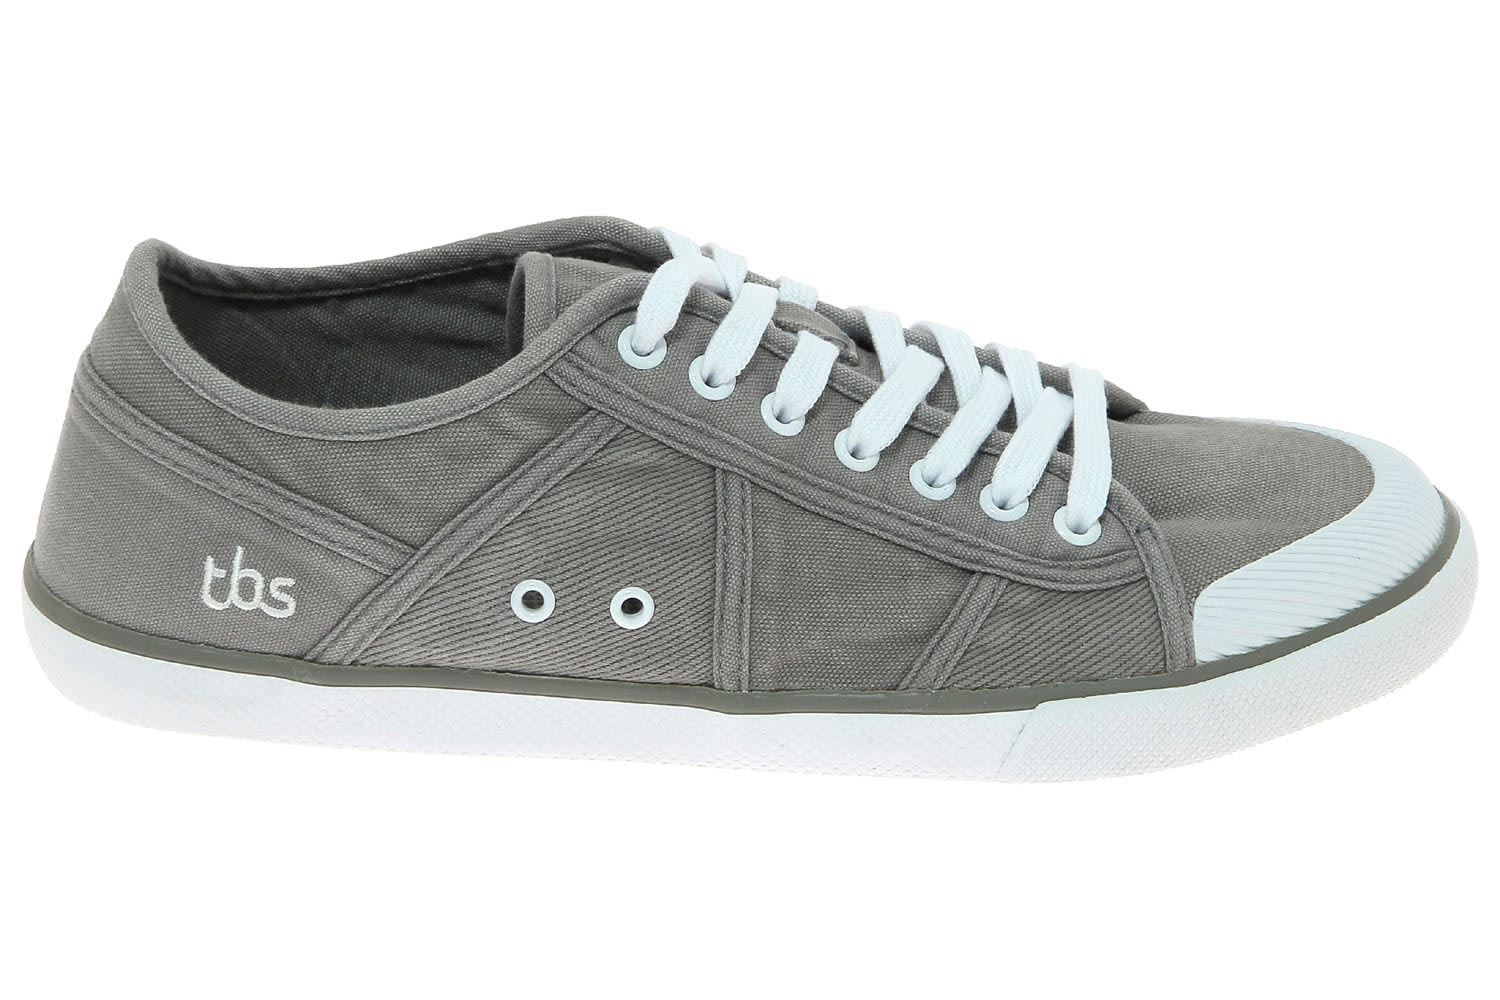 70b554600a2b80 Tbs D'ete Toile En Gris Violay Chaussures OPTkiuXZw